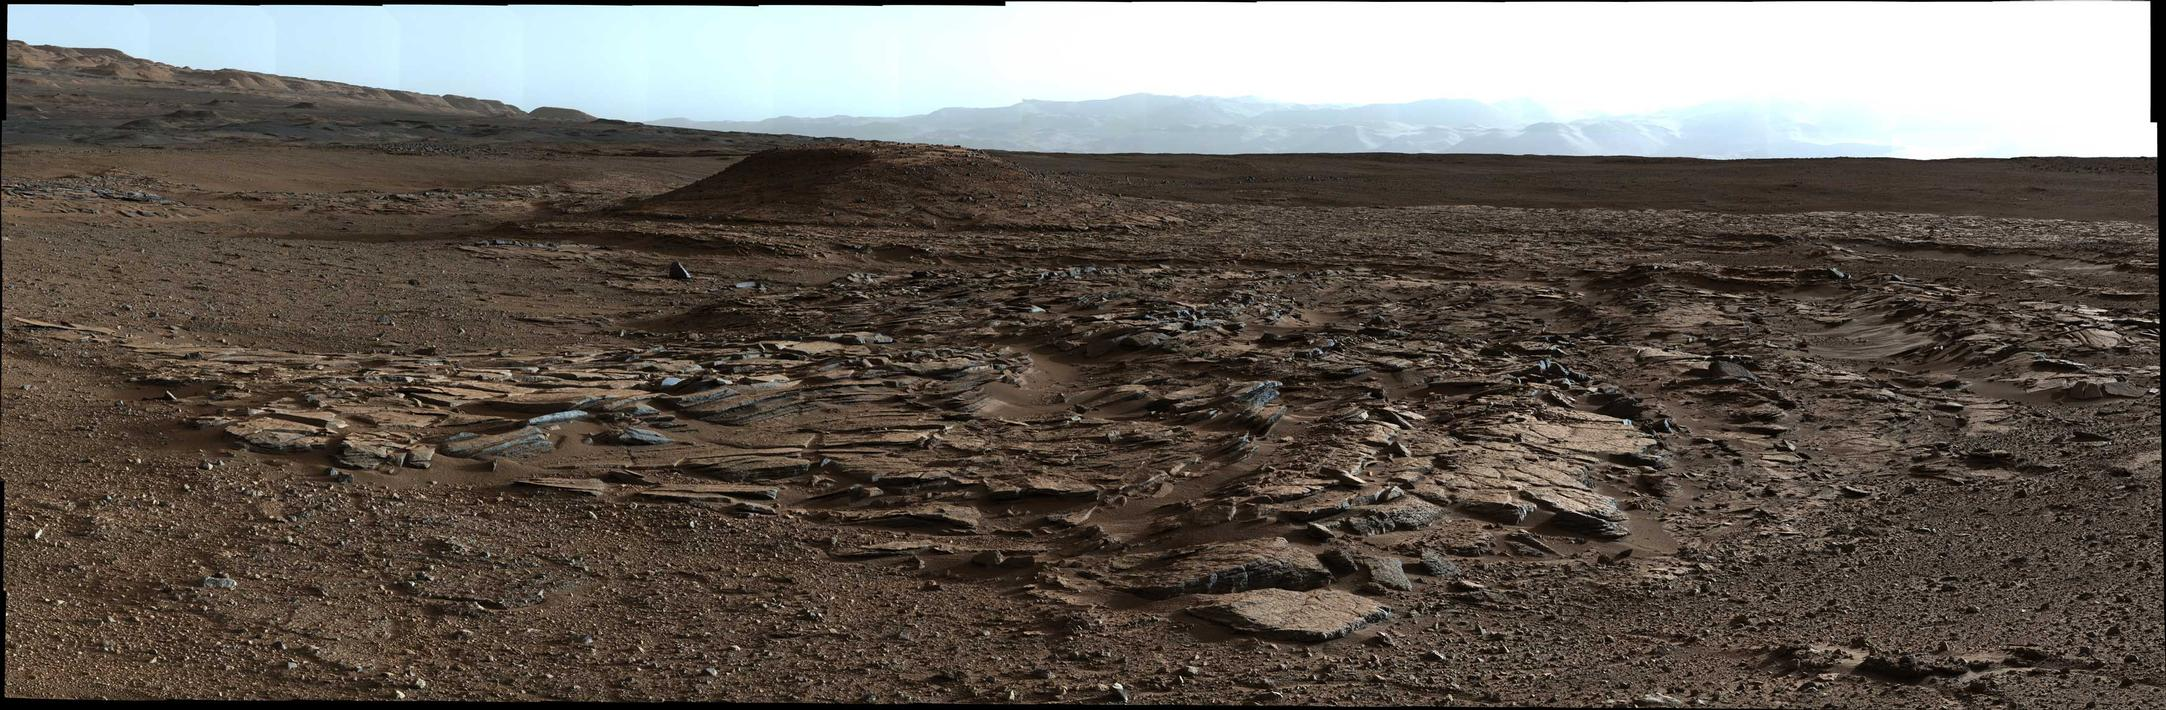 This April 4, 2014, image from Curiosity's Mastcam looks to the west of a waypoint on the rover's route to Mount Sharp. The mountain lies to the left of the scene. The image shows sets of sandstone beds inclined to the south (left), indicating progressive build-out of sediment toward Mount Sharp.